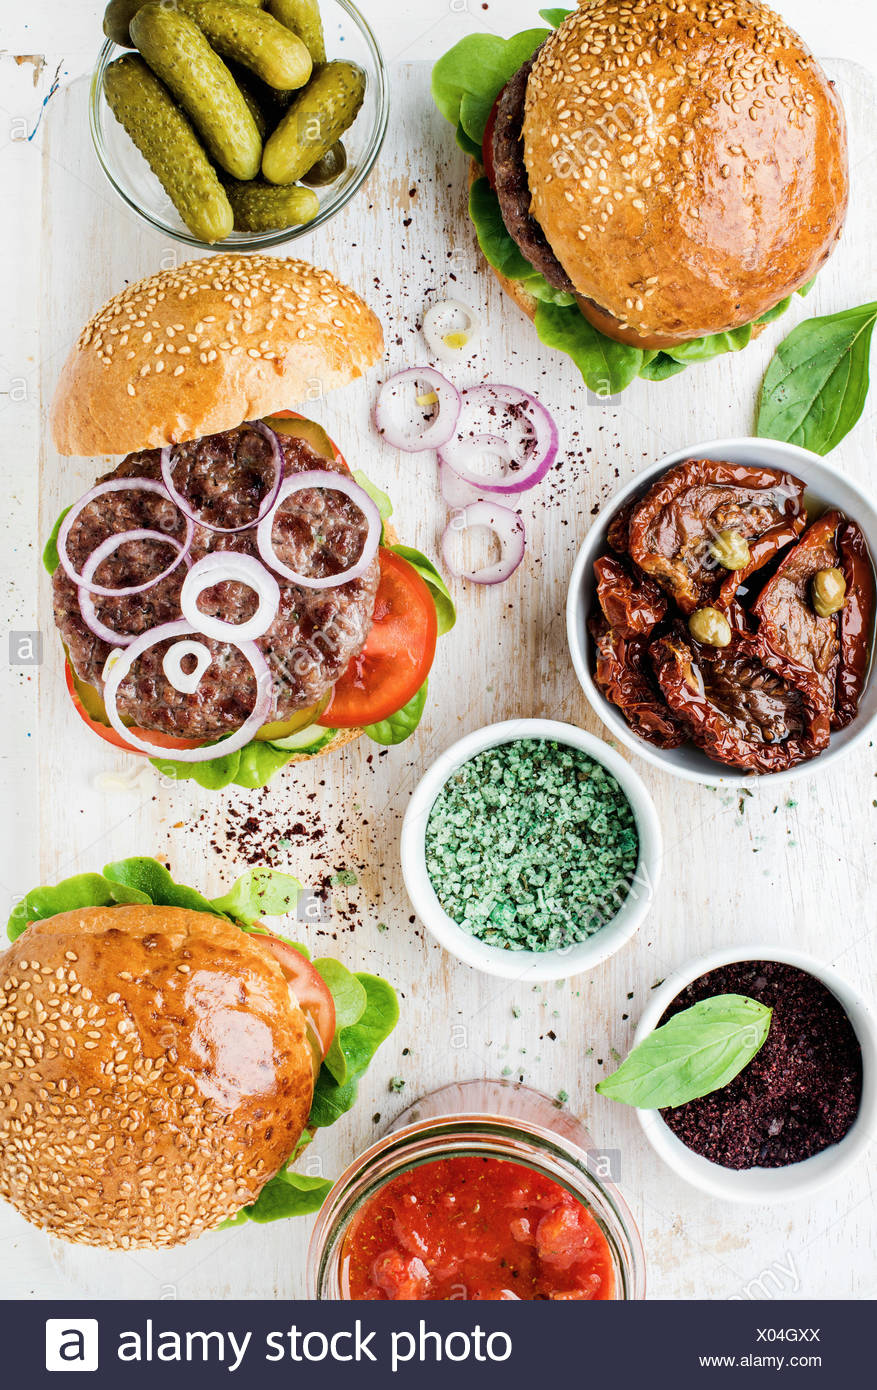 Homemade beef burgers with onion, pickles, fresh vegetables, spices, sun-dried tomatoes and tomato sauce on serving wooden board - Stock Image